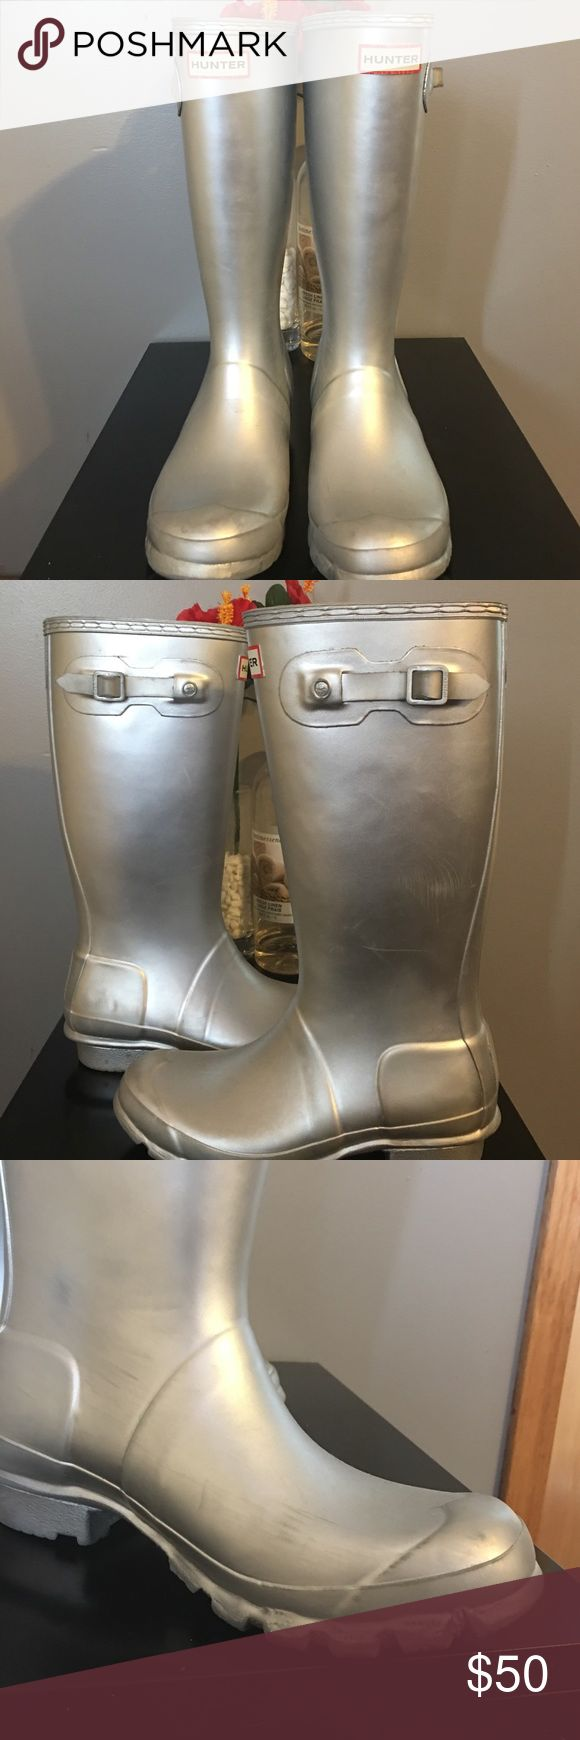 Silver hunter boots Silver Hunter boots in fair condition, the photos shows the scuff marks other than that there's no tears size 6 Hunter Boots Shoes Winter & Rain Boots